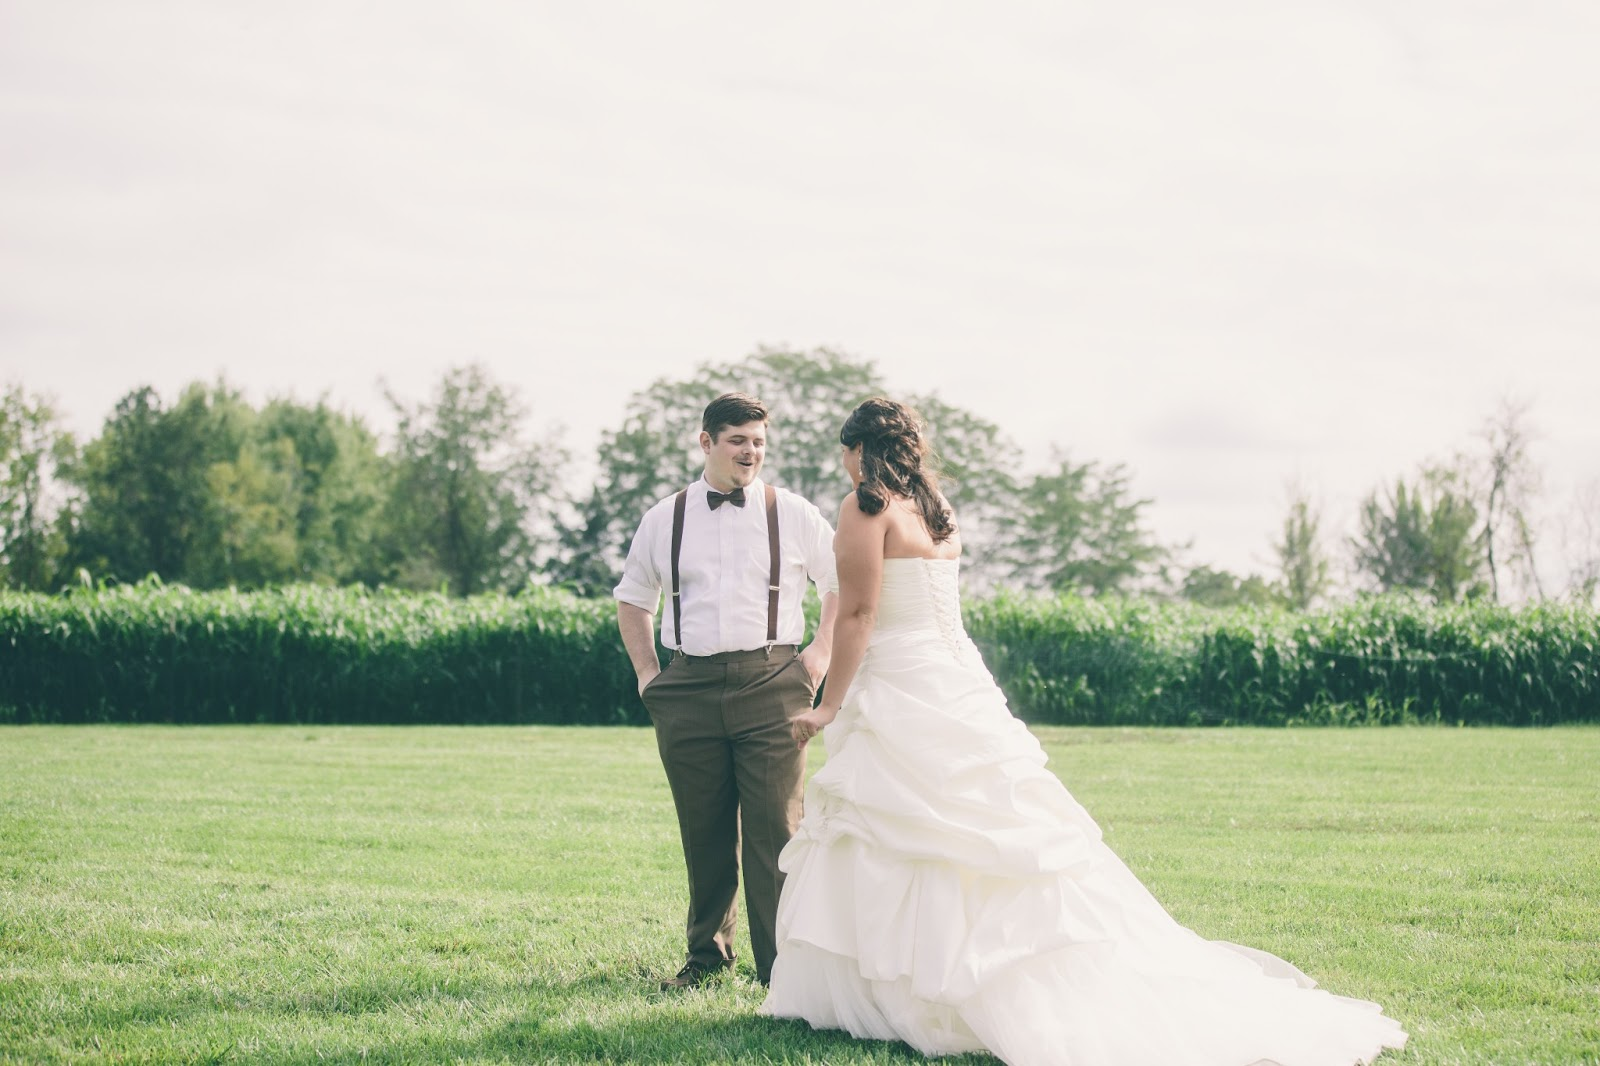 Wonderment in Neverland: Wedding Wonderment: First Look and the Dress